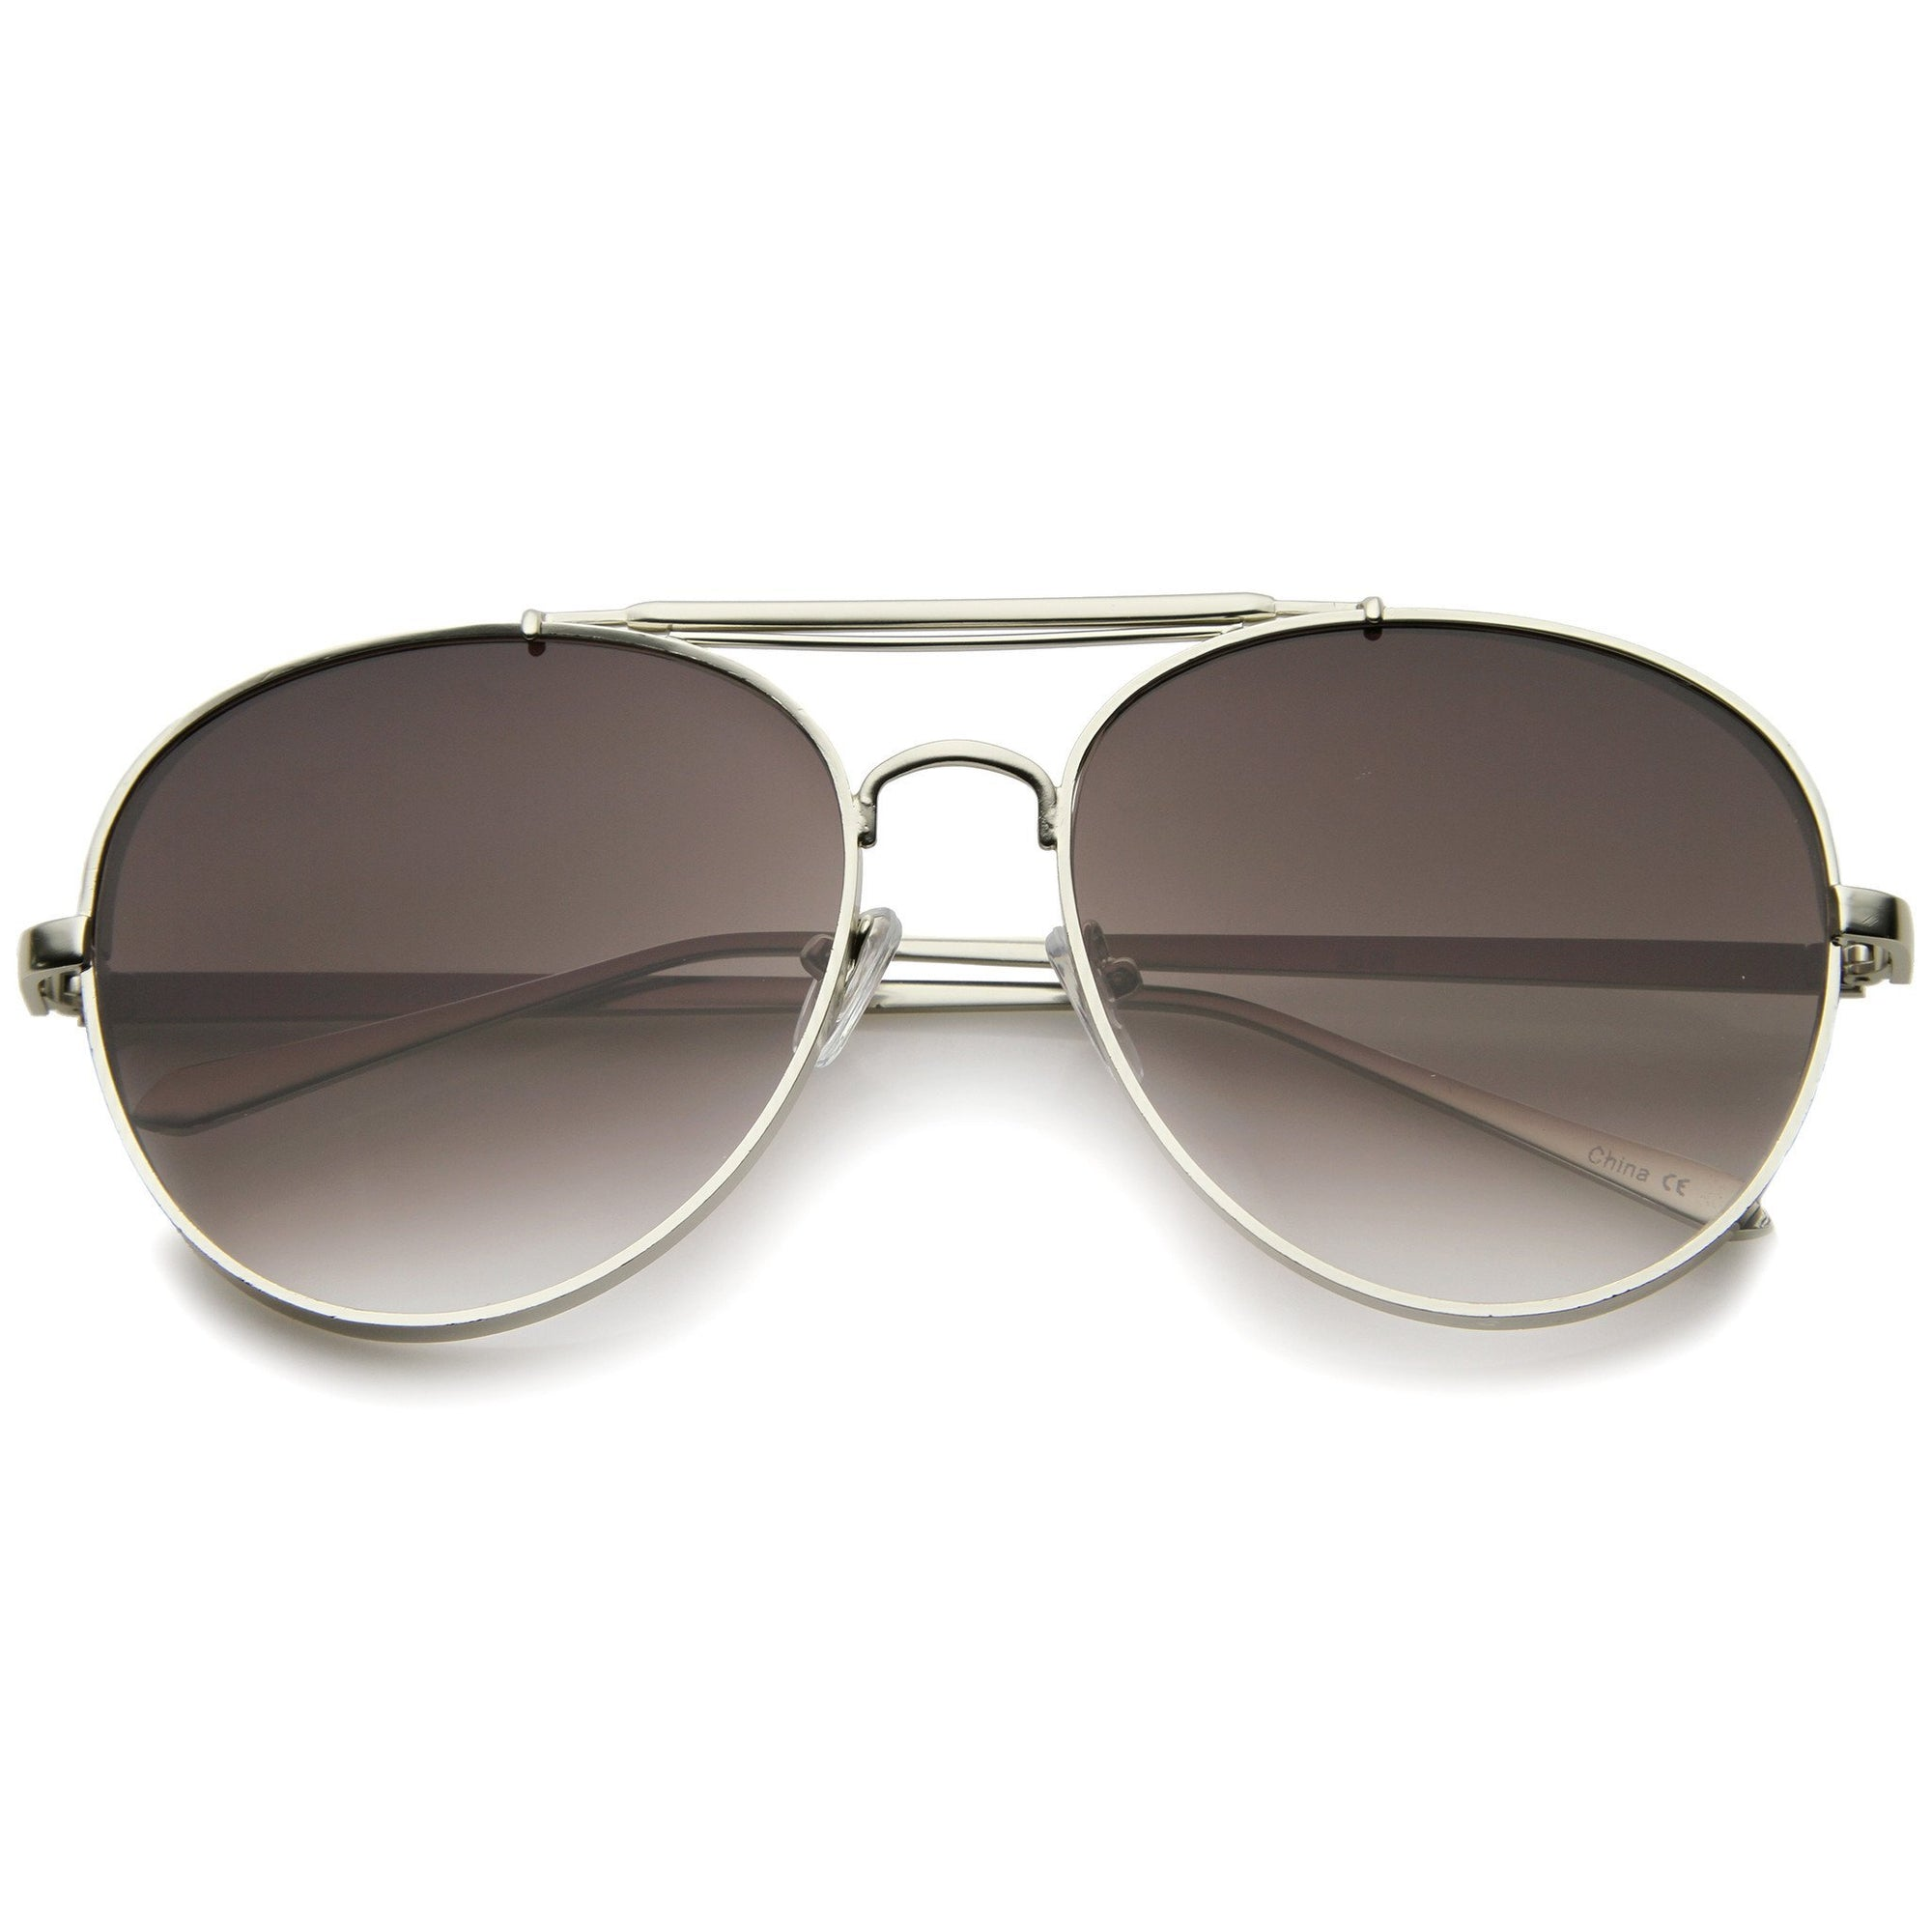 Modern Side Cover Flat Lens Aviator Sunglasses A253